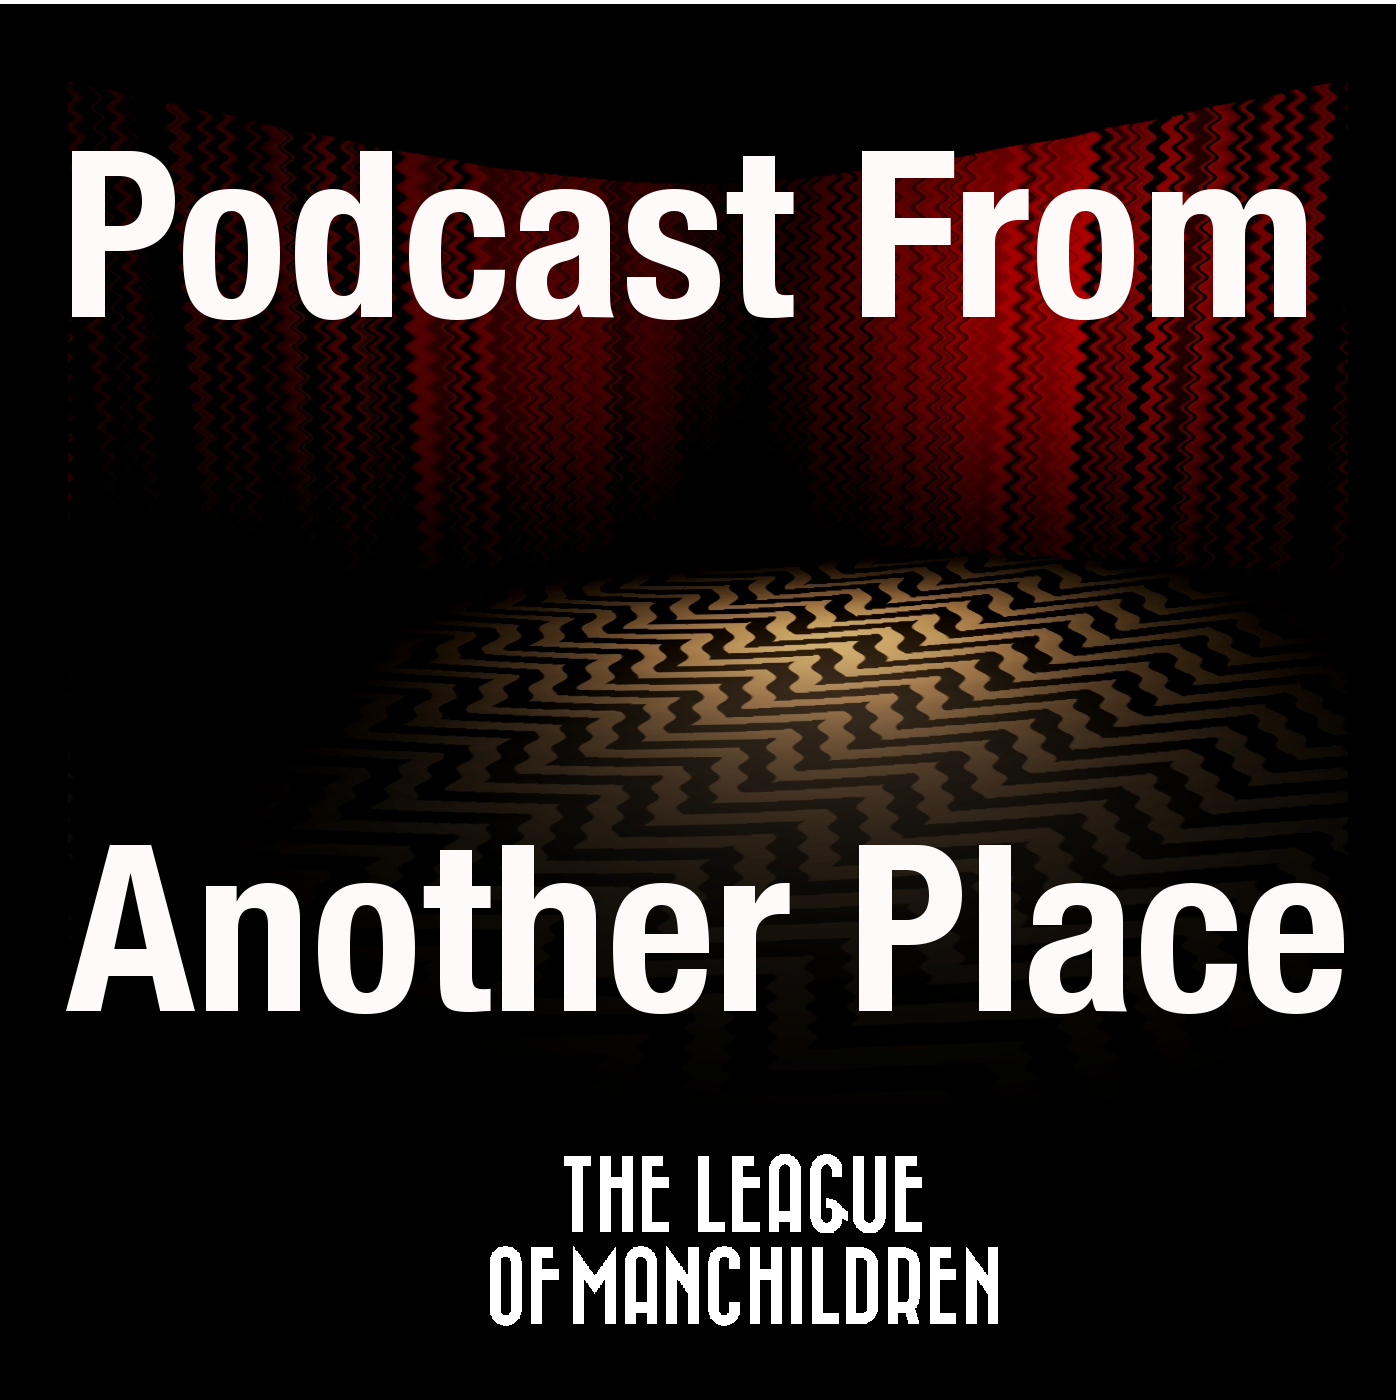 Podcast From Another Place #27 - On the Wings of Love show art